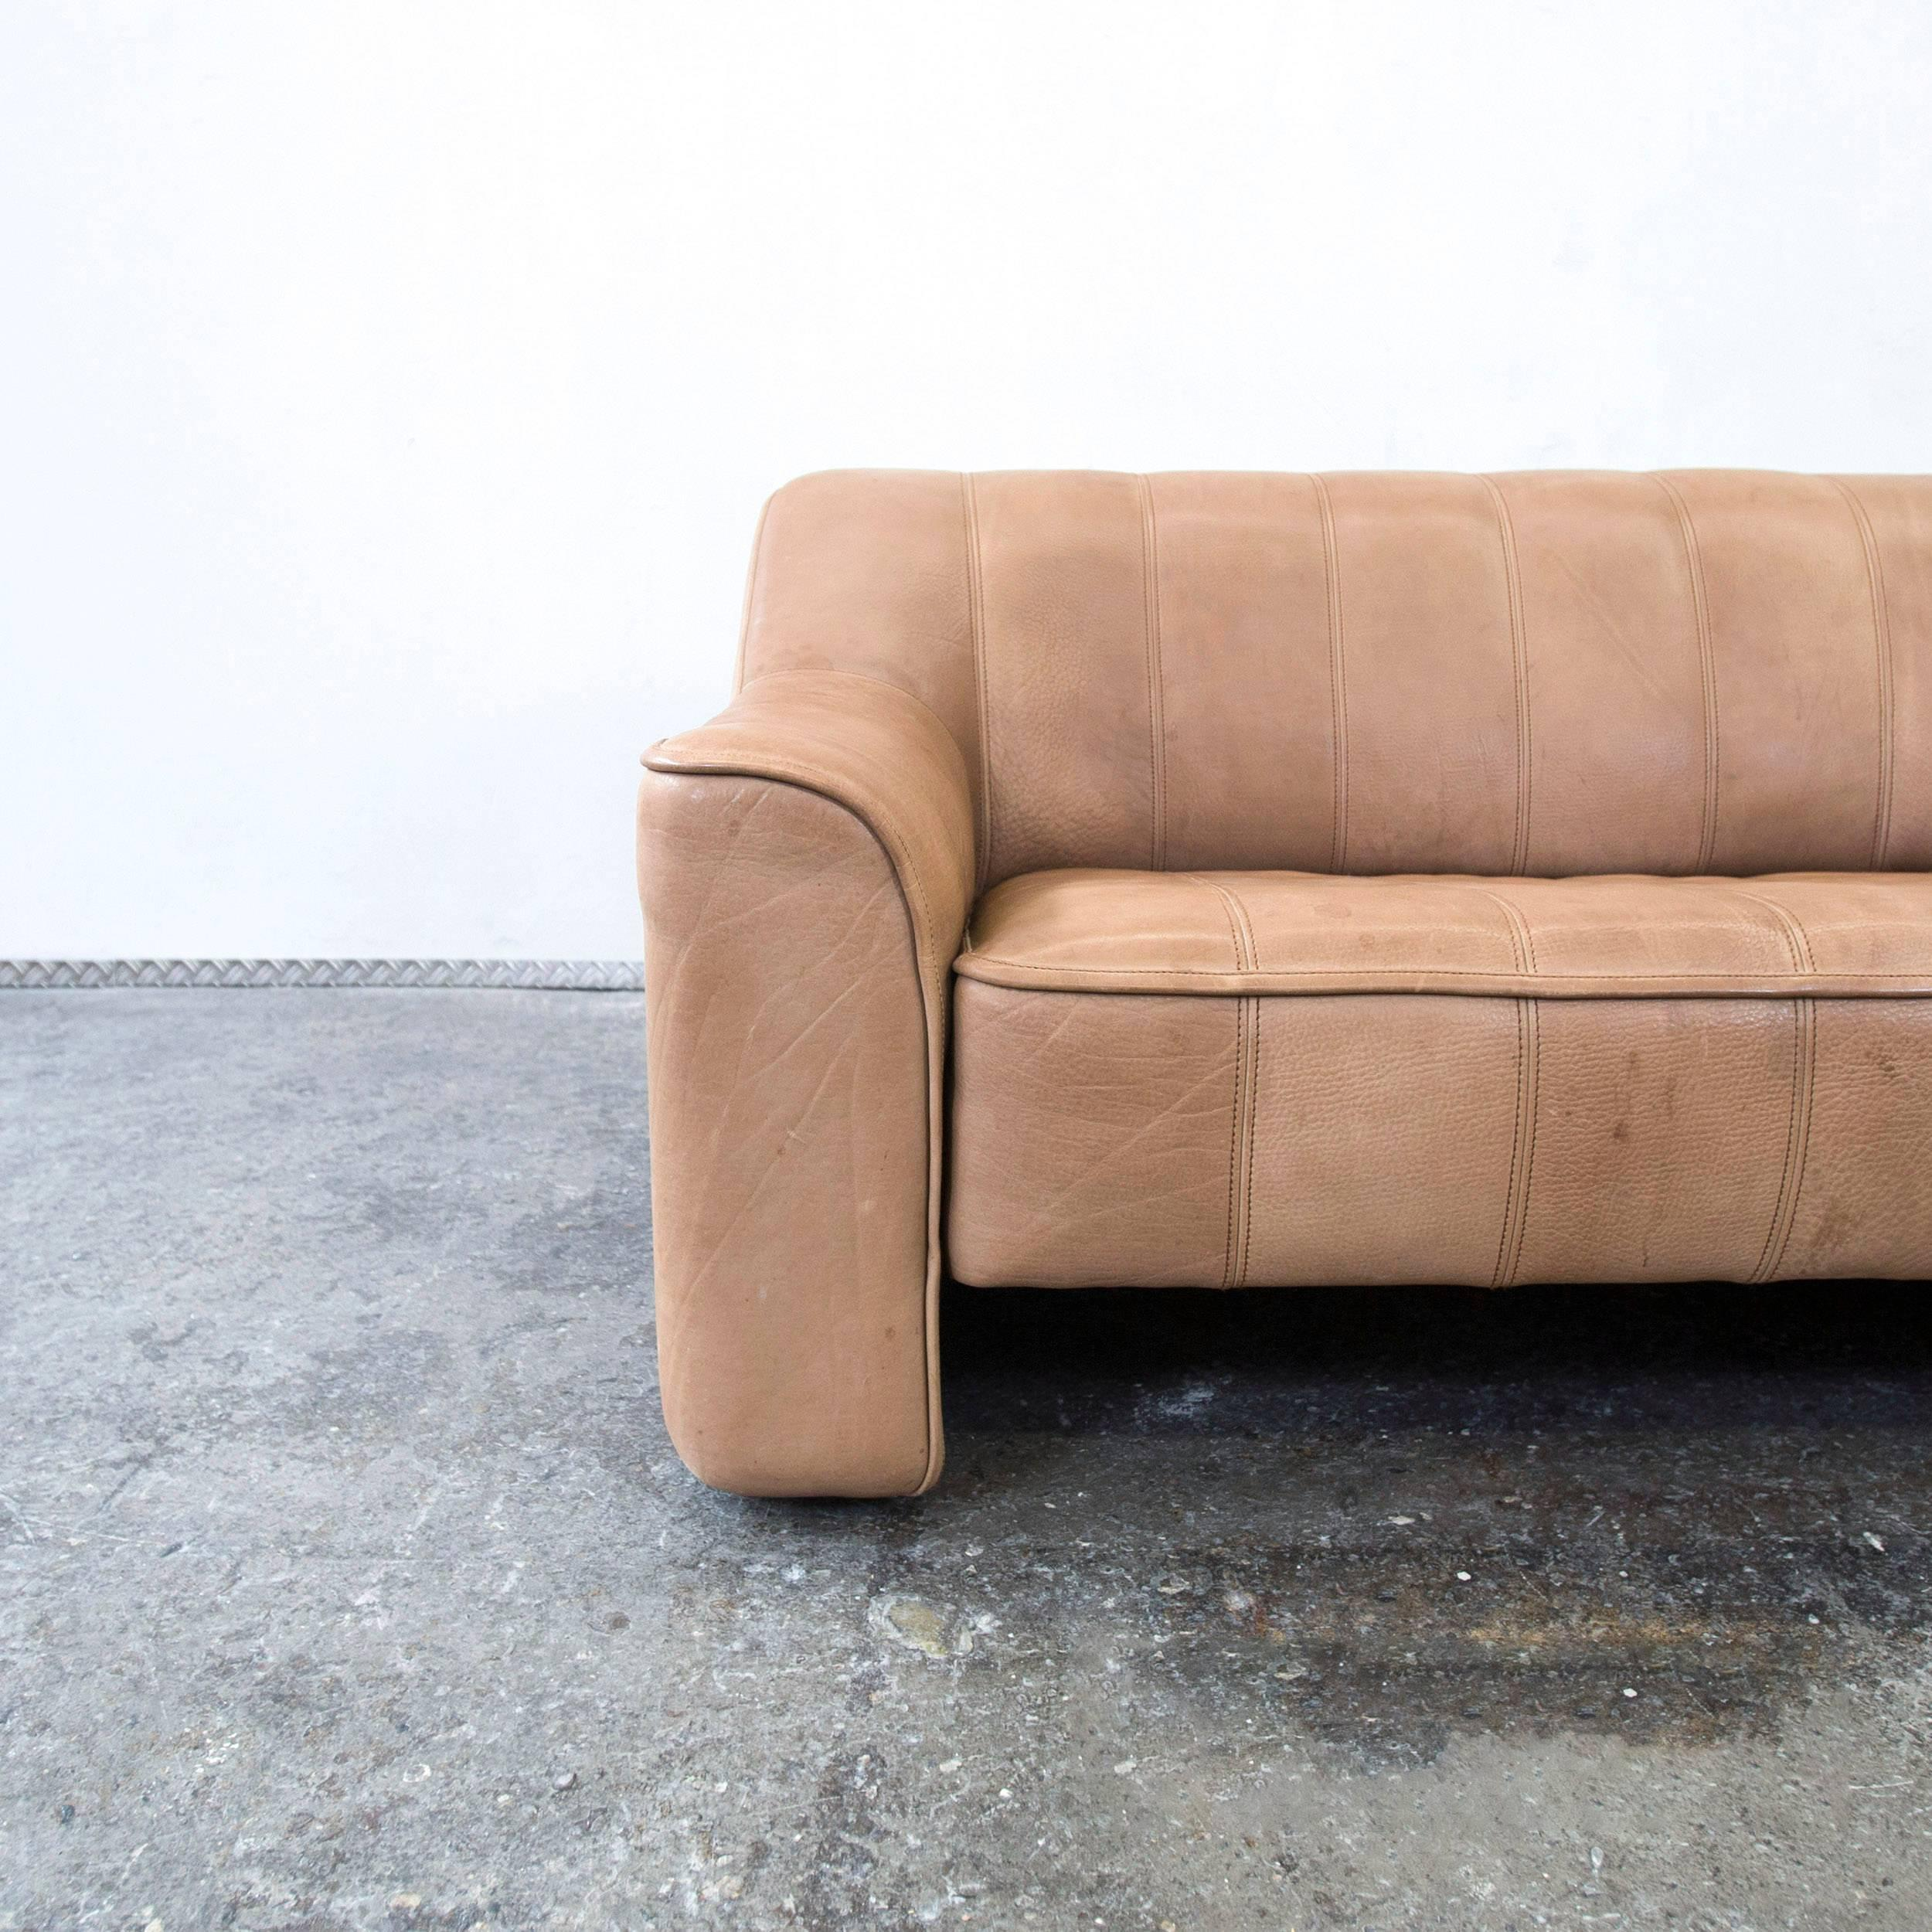 Finest Cool De Sede Ds Anilin Leather Sofa Brown Twoseat Couch Modern With  Couch Braun Beige With Sofa Beige Leder With Couch Beige Braun